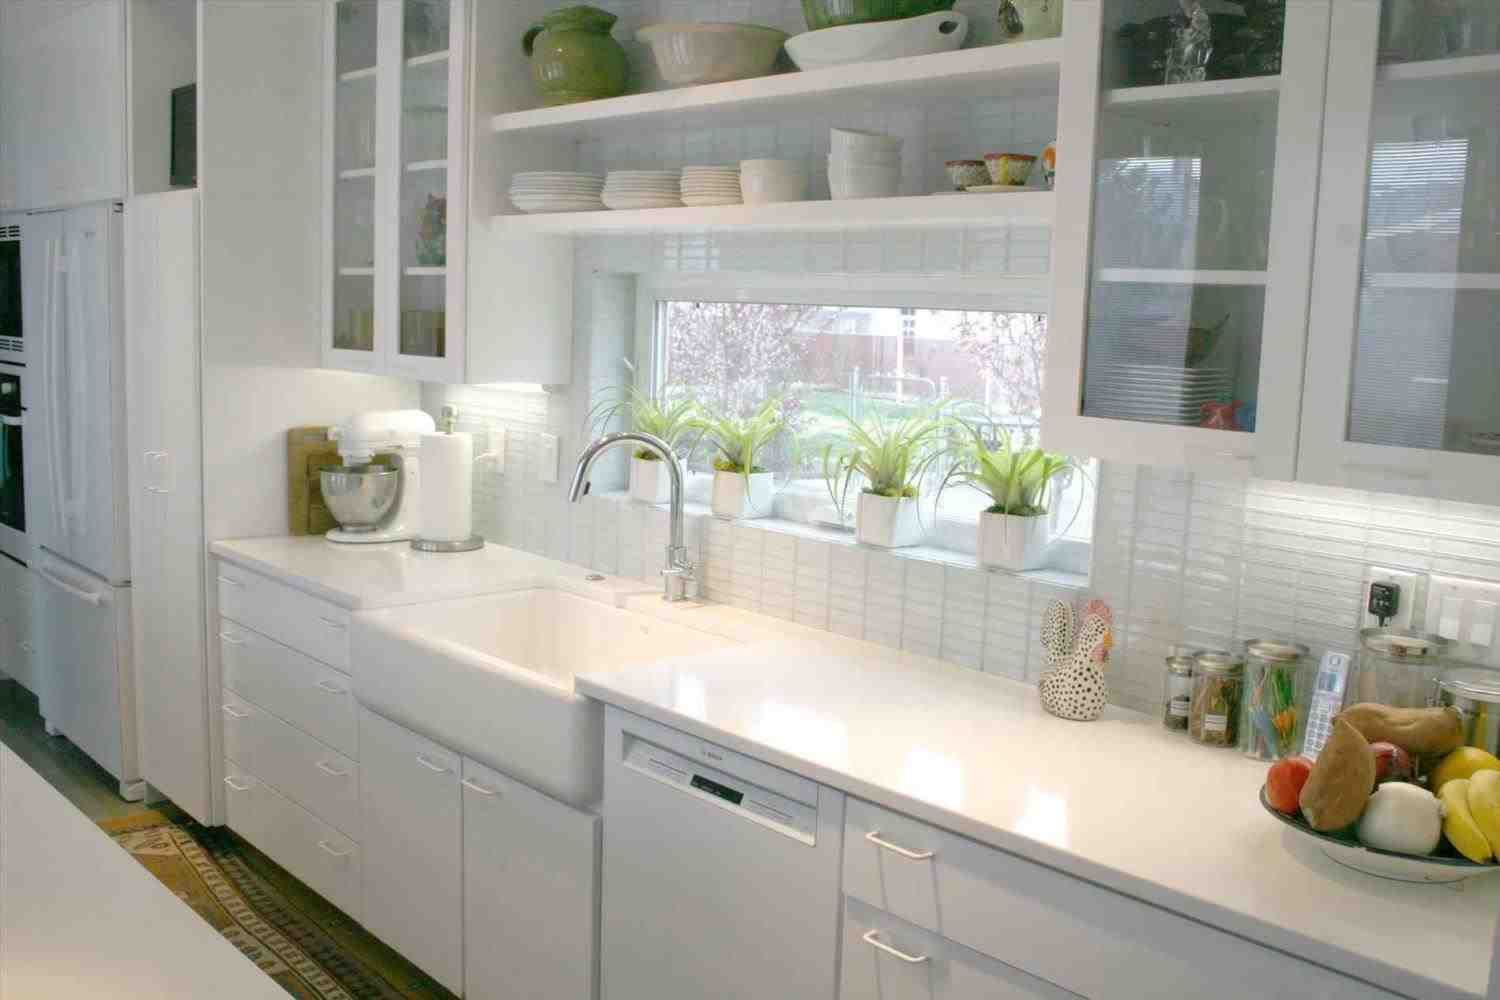 New Post subway tile kitchen backsplash dark grout | Decors Ideas ...